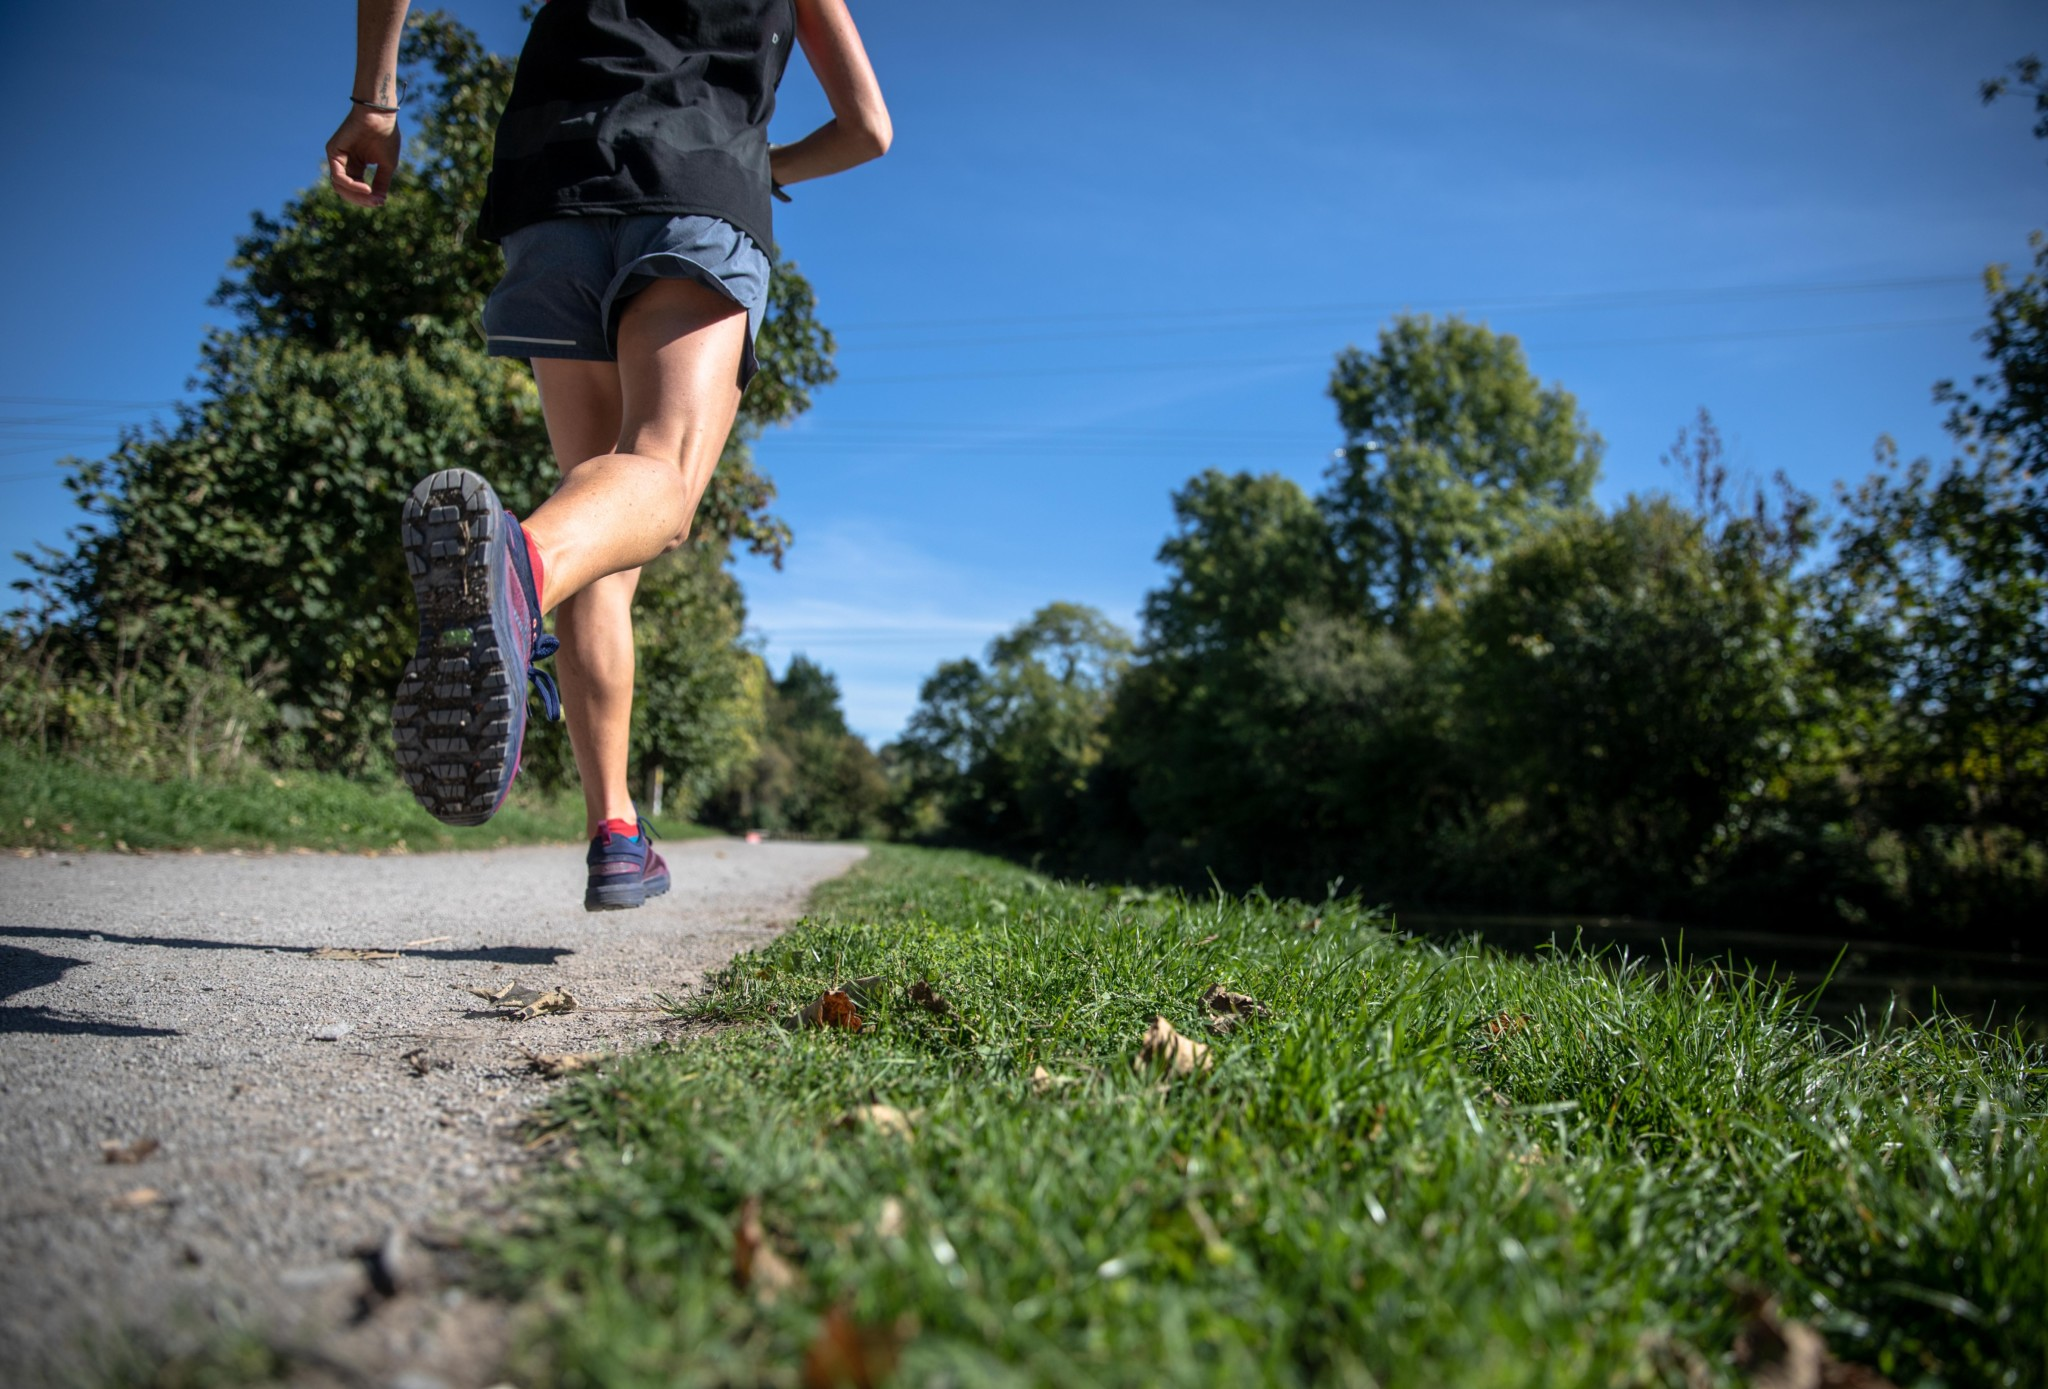 Photo of a woman running on a paved trail. Photo by Stage 7 Photography on Unsplash